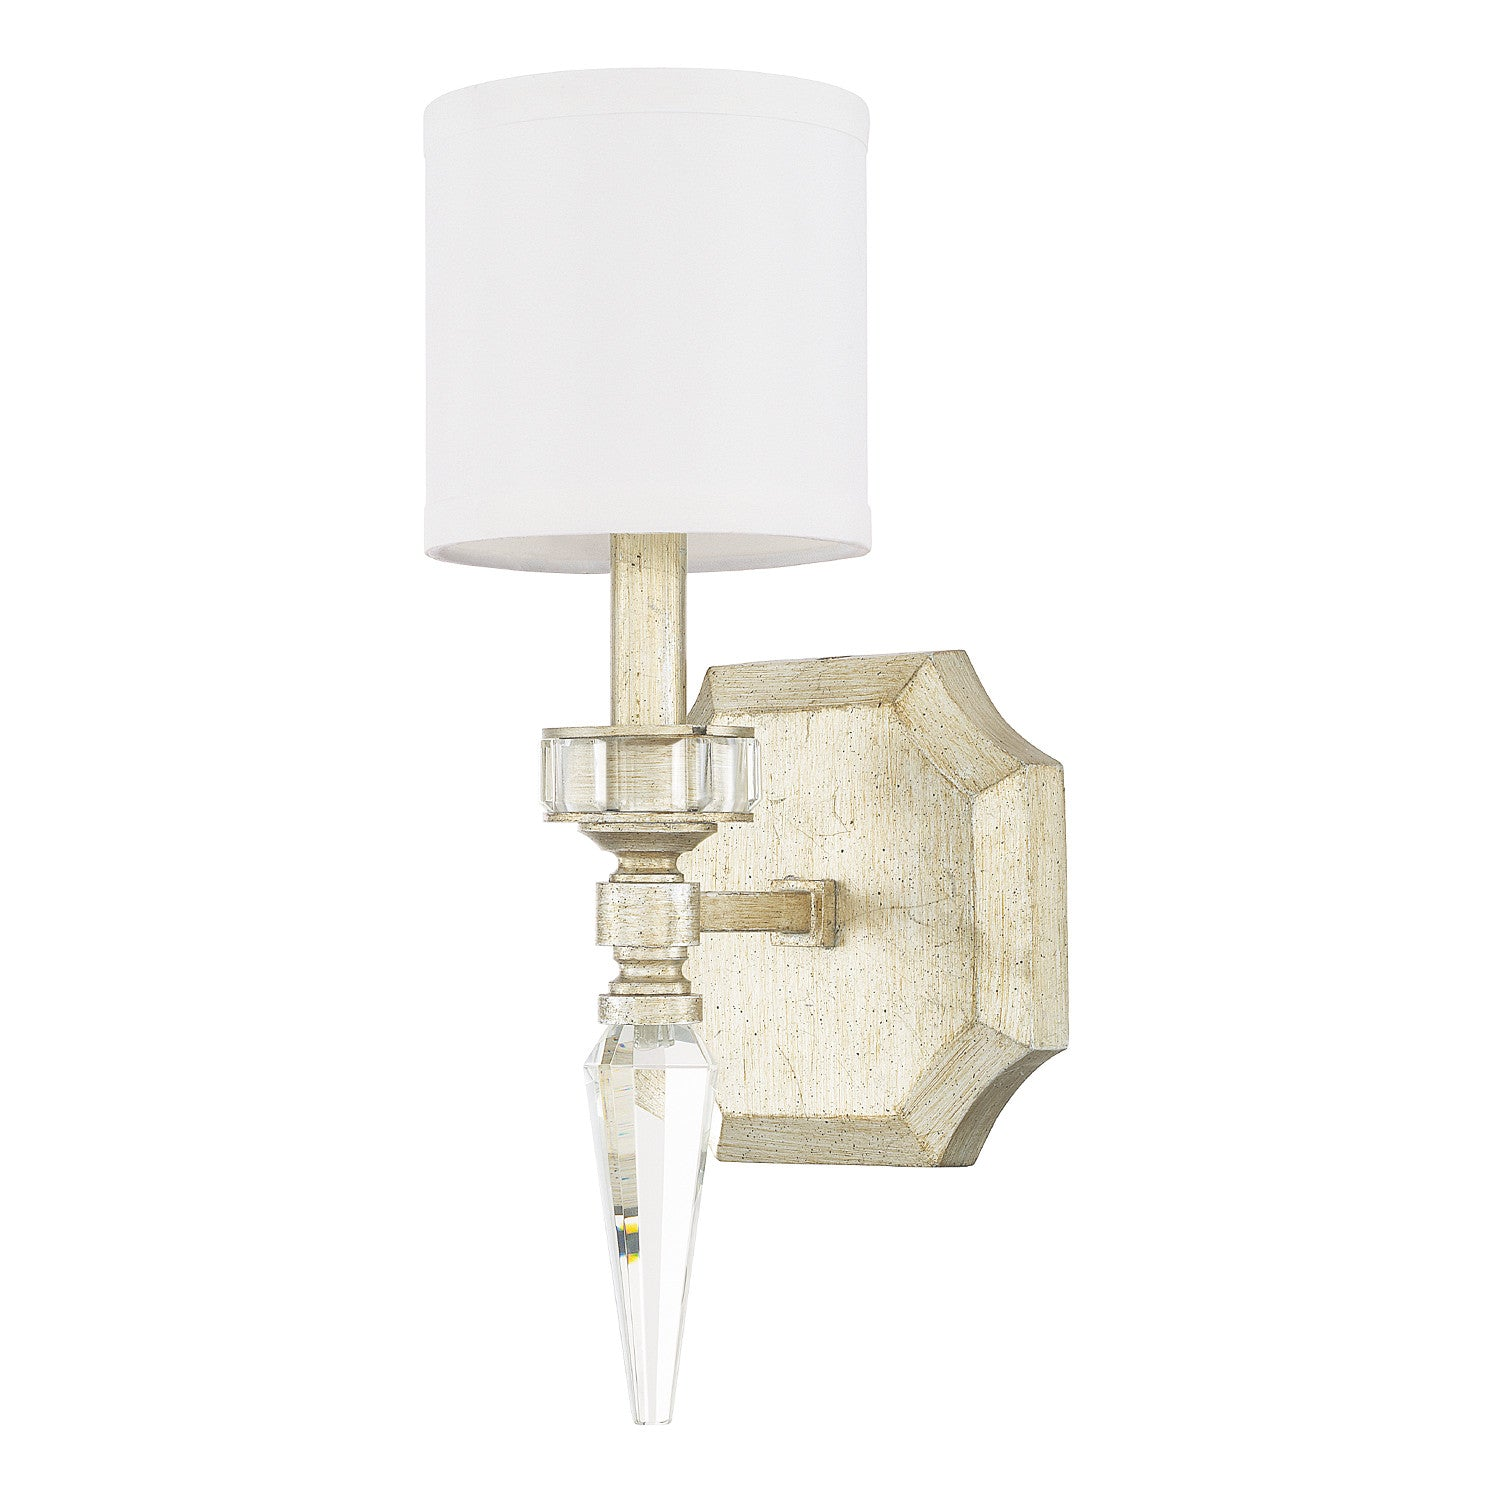 1 Light Olivia Wall Sconce by Capital Lighting with Cylindrical Shade and Faceted Crystal Stem 615011WG-671